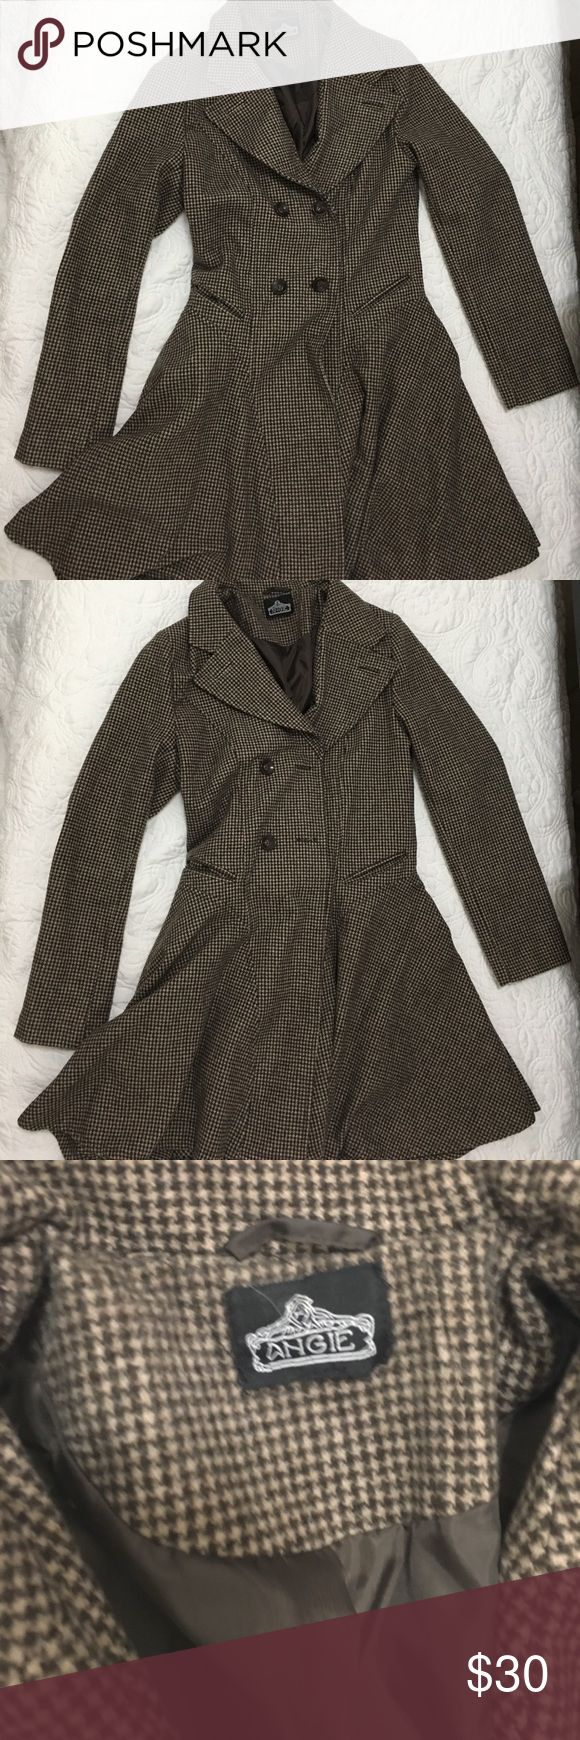 Brown and black coat Patterned classic brown and black coat! Perfect for any chilly weather! Will go with anything! Cute and timeless! Jackets & Coats